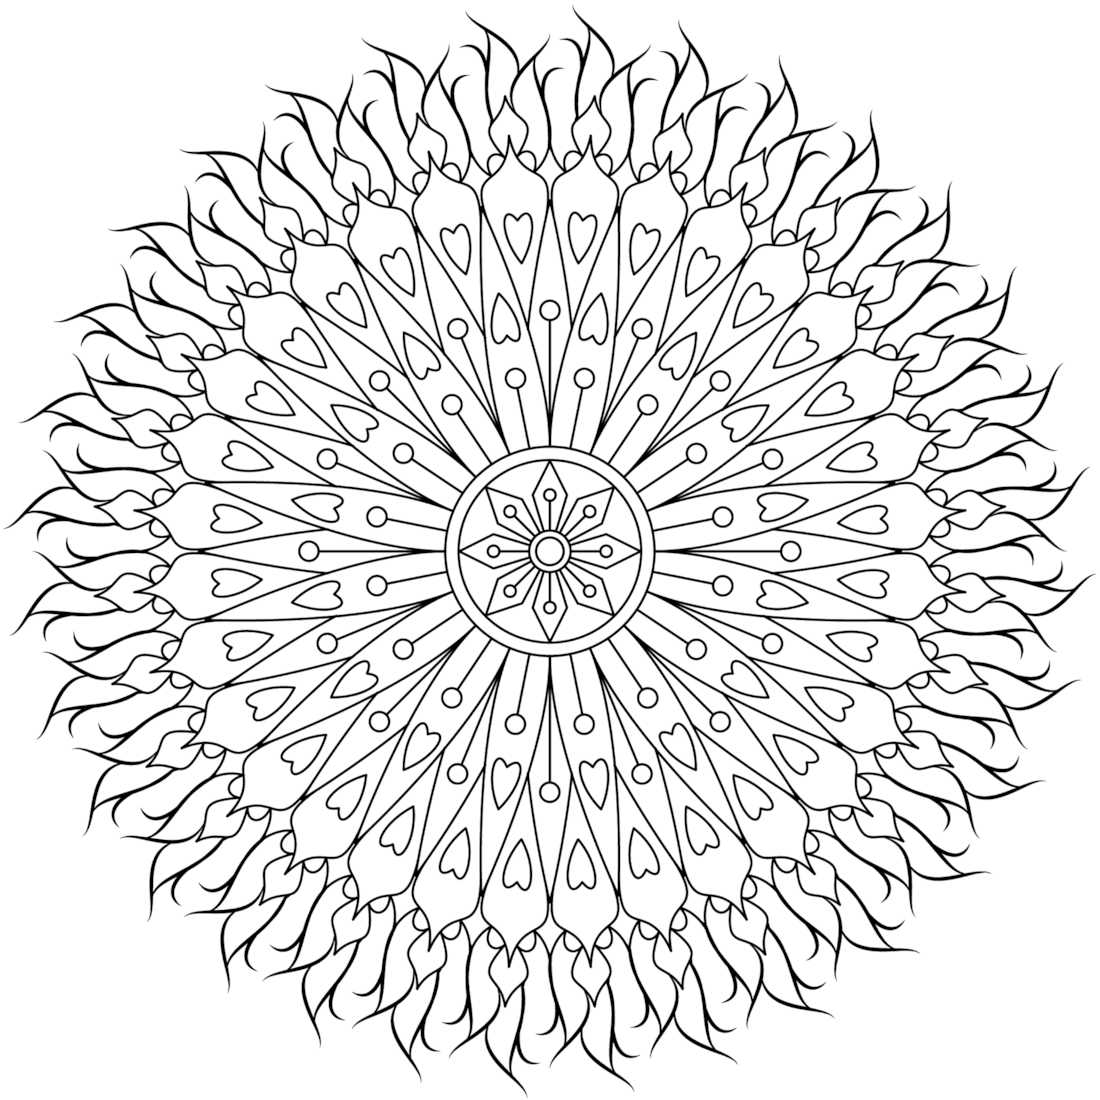 Healing Touch Coloring Page